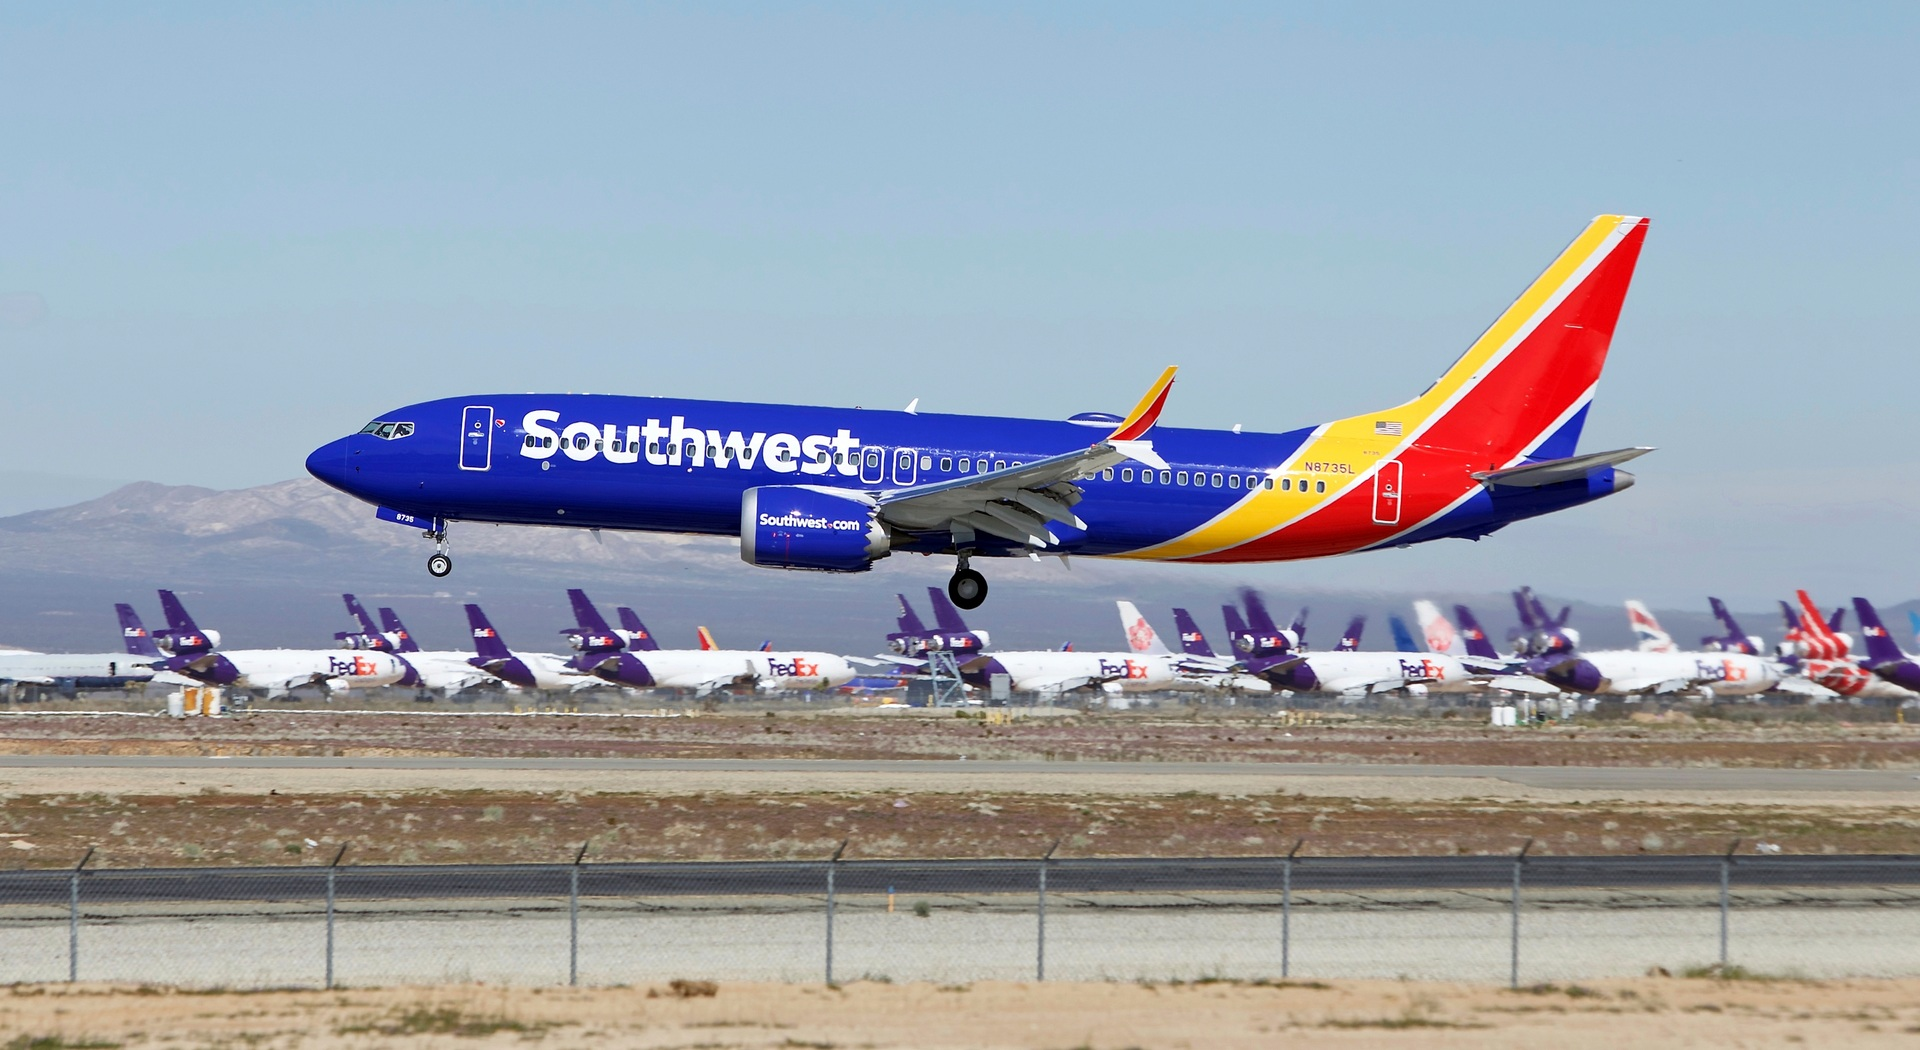 Southwest Airlines Boeing 737 Max makes emergency landing on way to storage